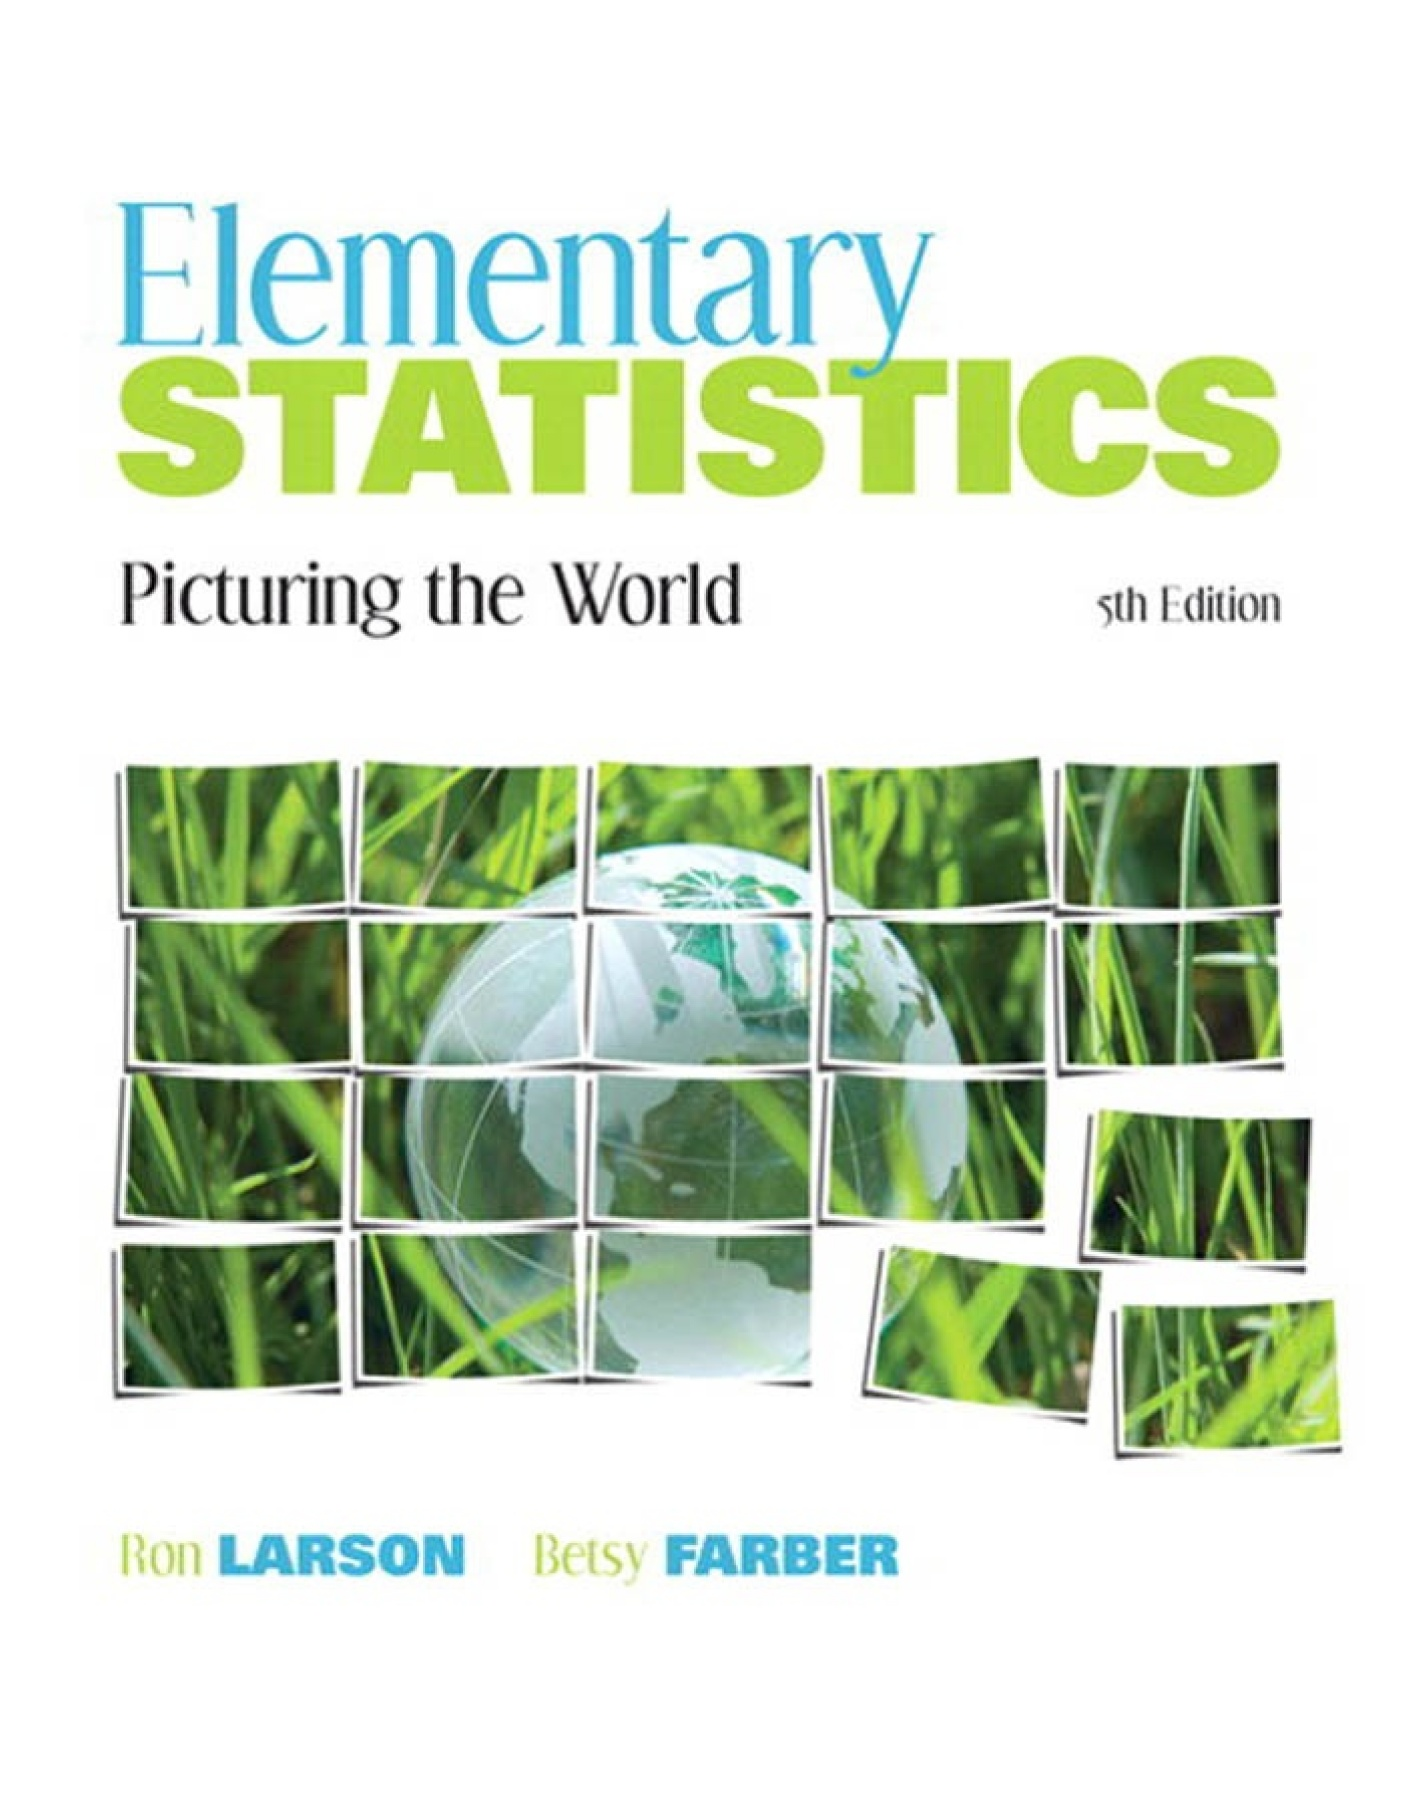 Elementary Statistics - 5th Edition Pages 401 - 450 - Text